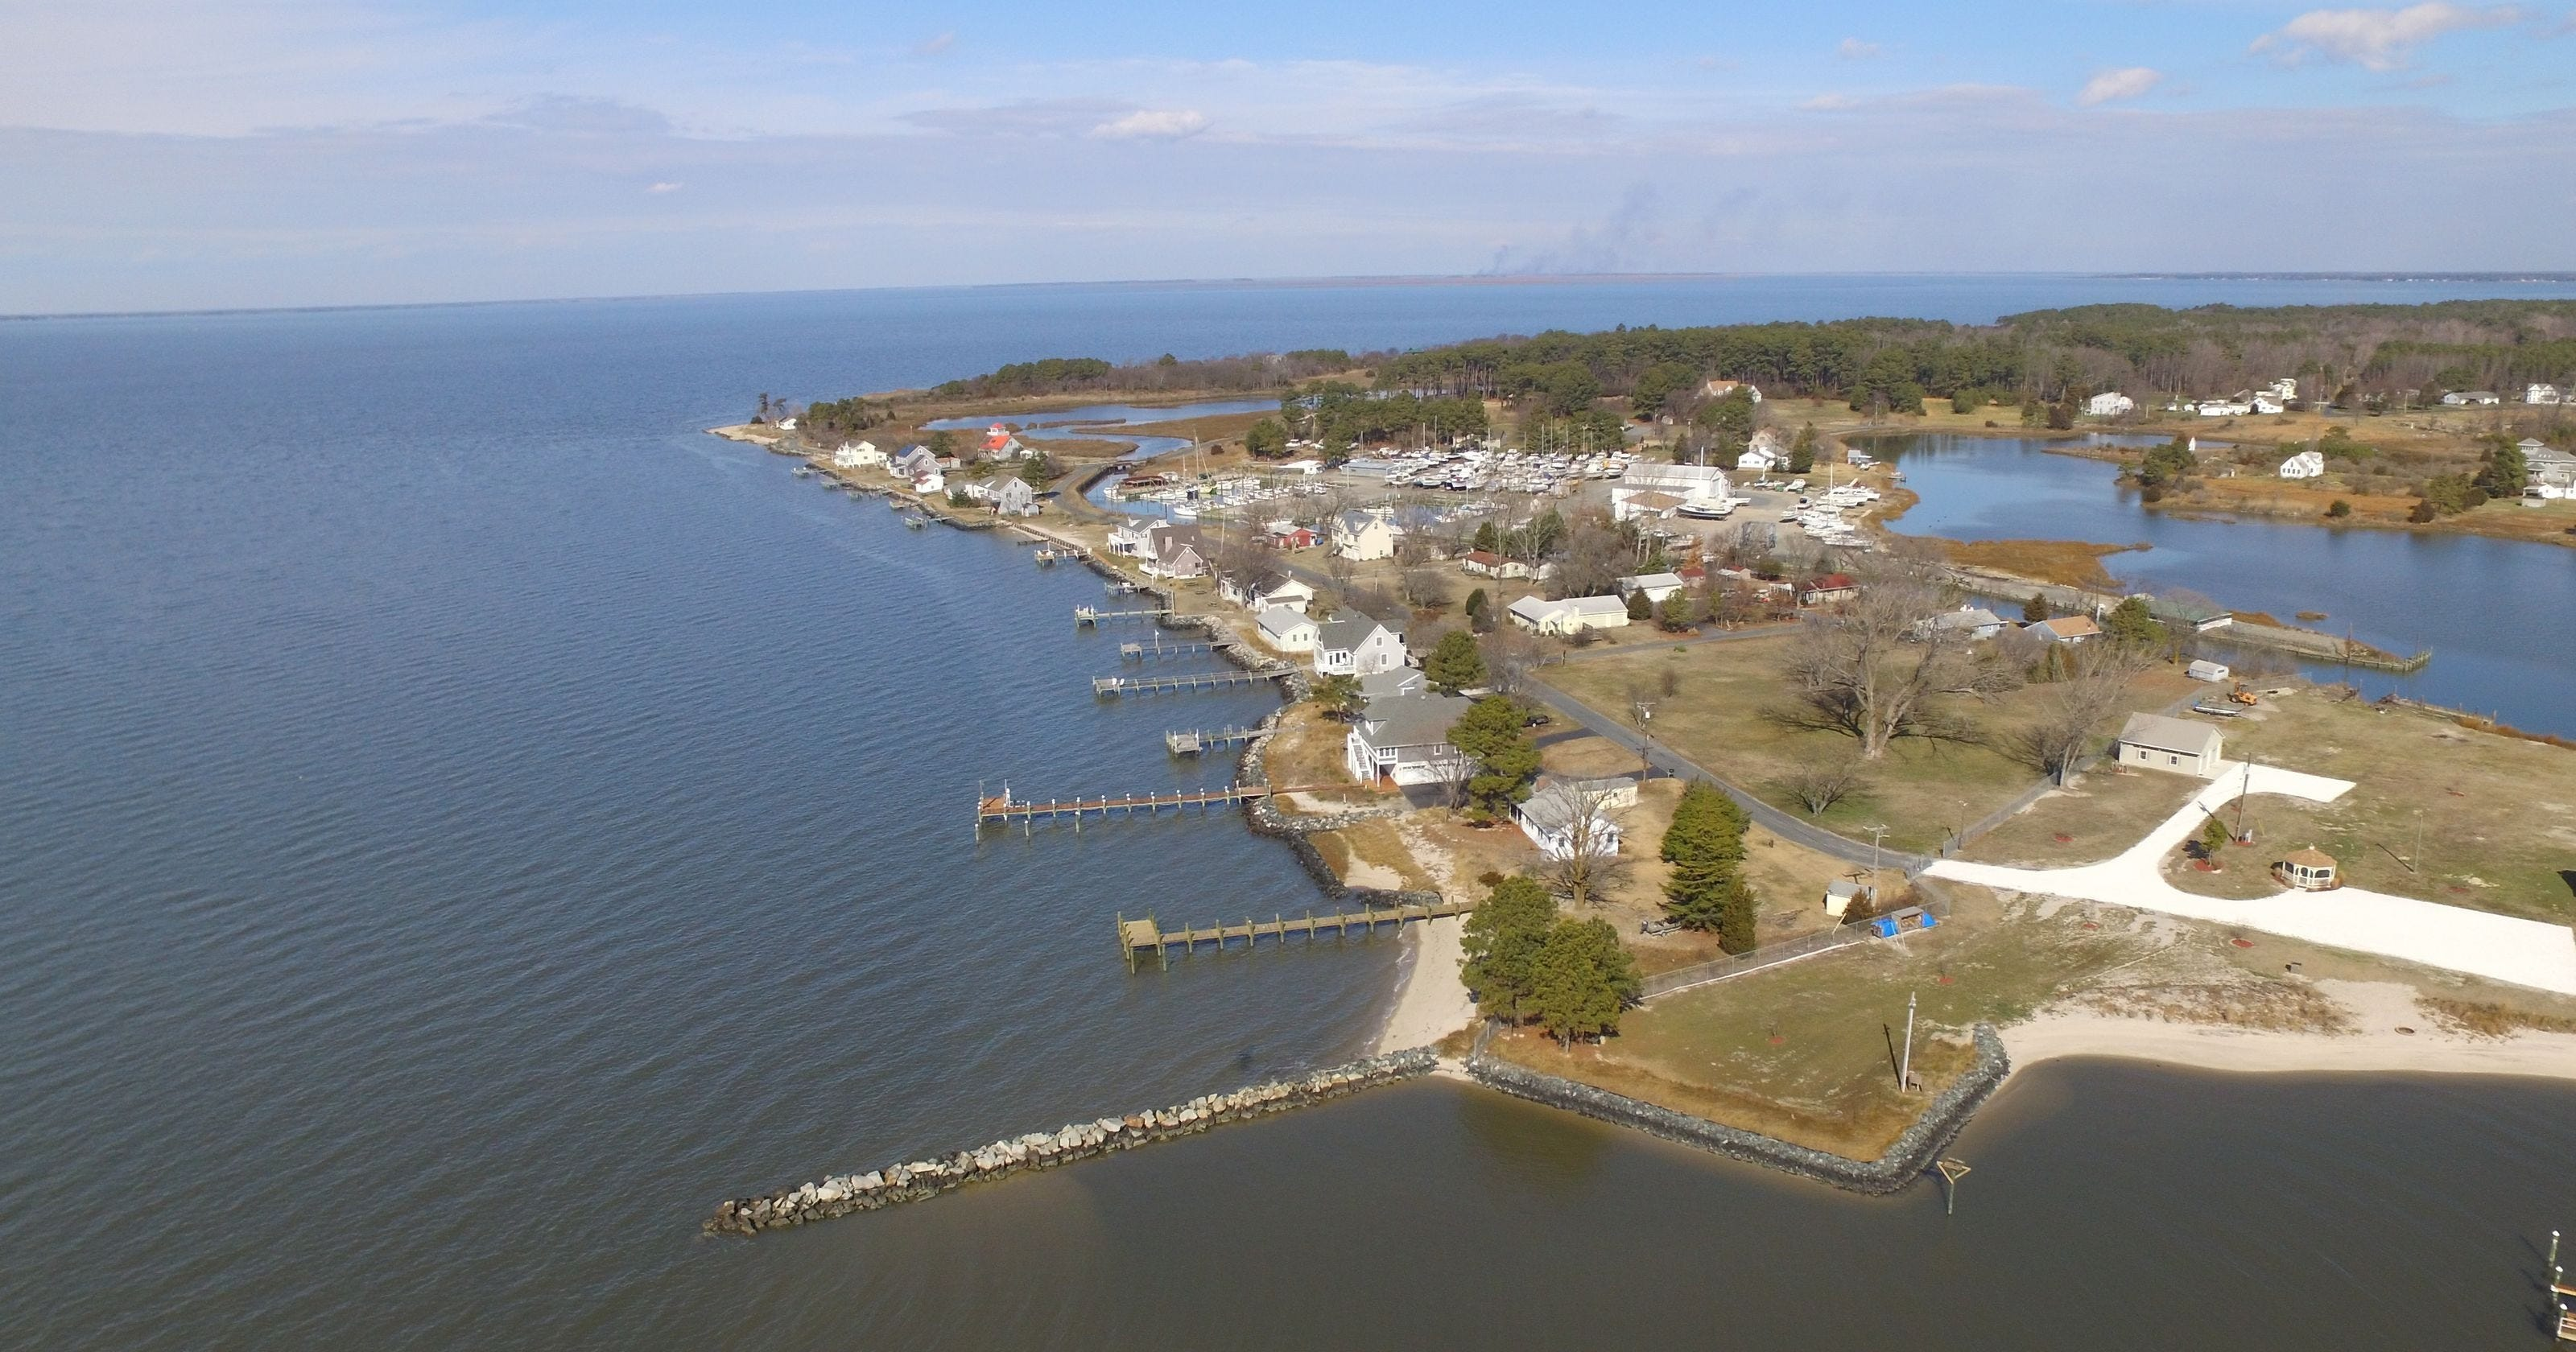 The Chesapeake Bay fishing village of Deal Island, Md., is shown.